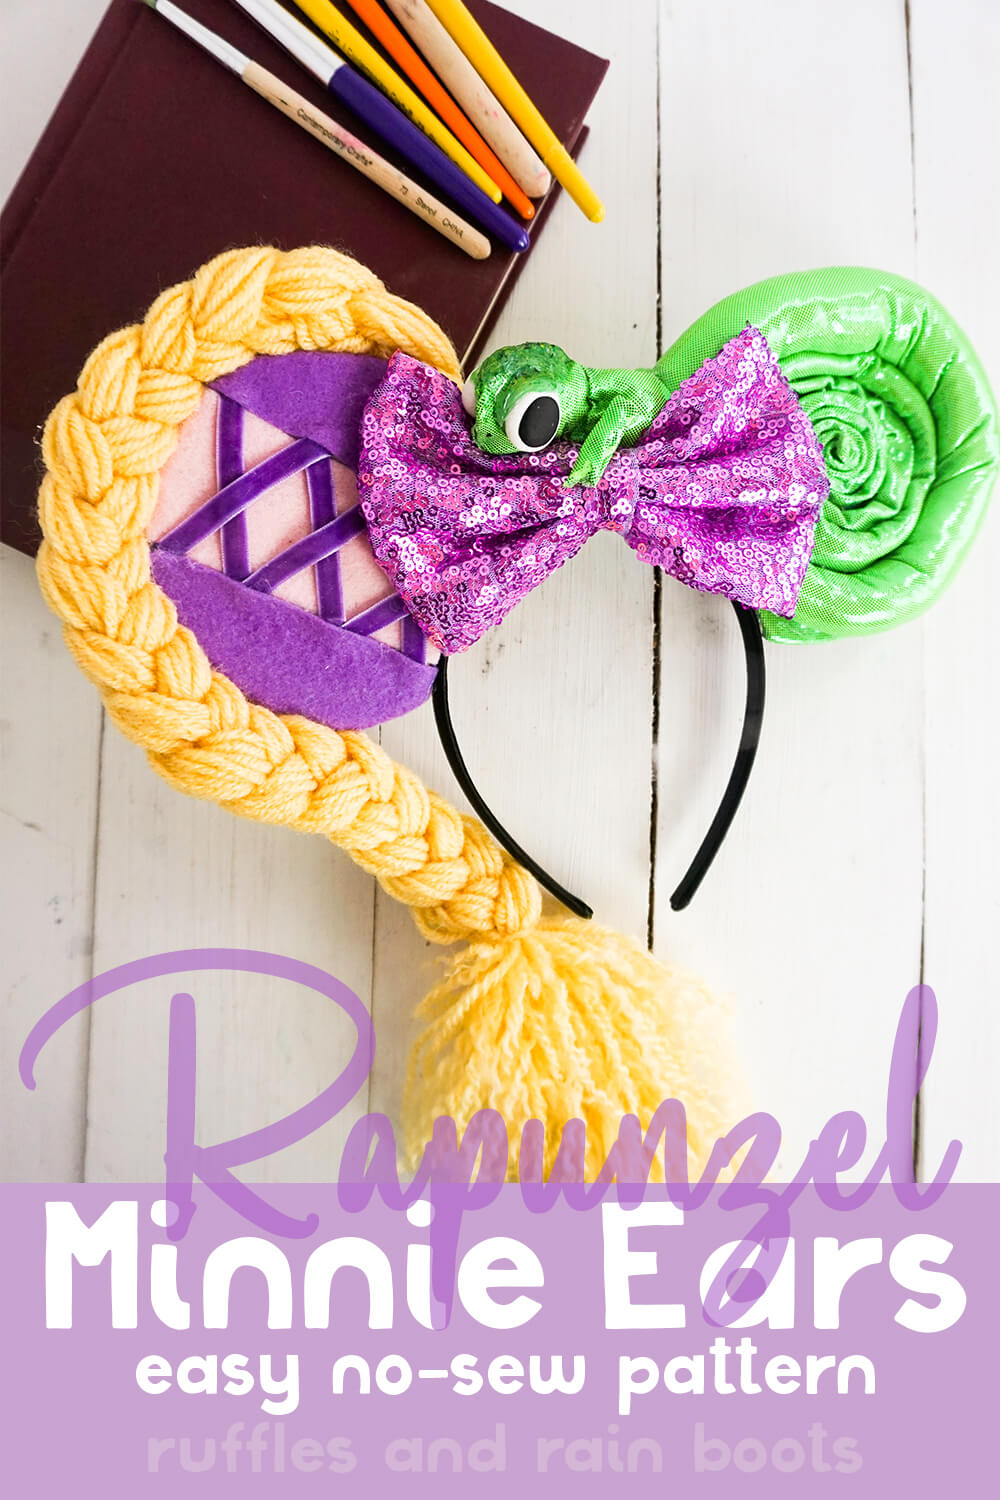 Tangled minnie ears on a white wood background with a box with text which reads rapunzel minnie ears easy no-sew pattern